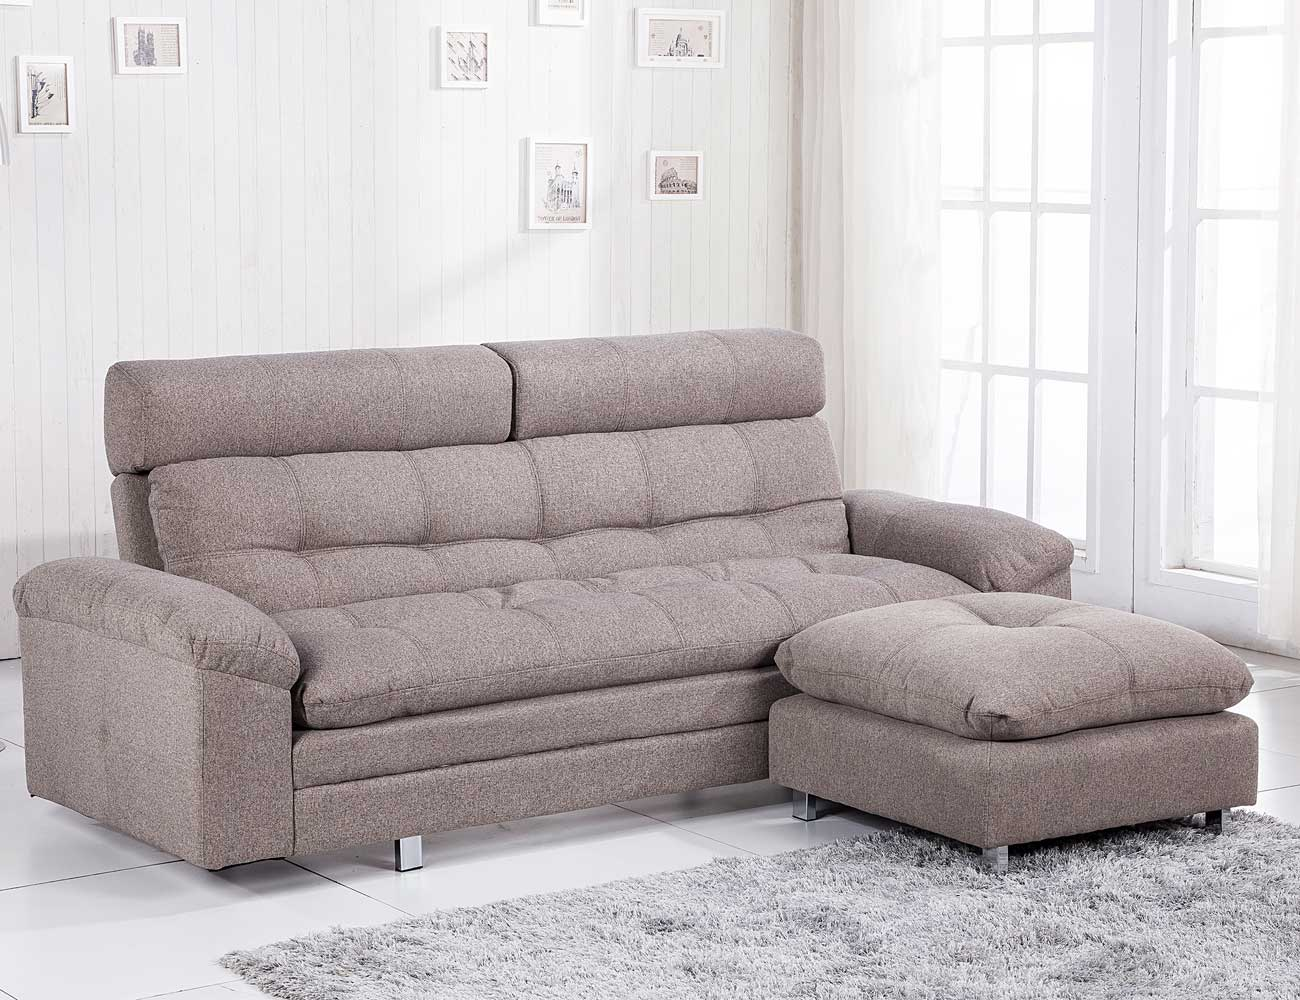 Sof cama con chaiselongue puf reversible y apoya cabeza for Sofa cama opiniones